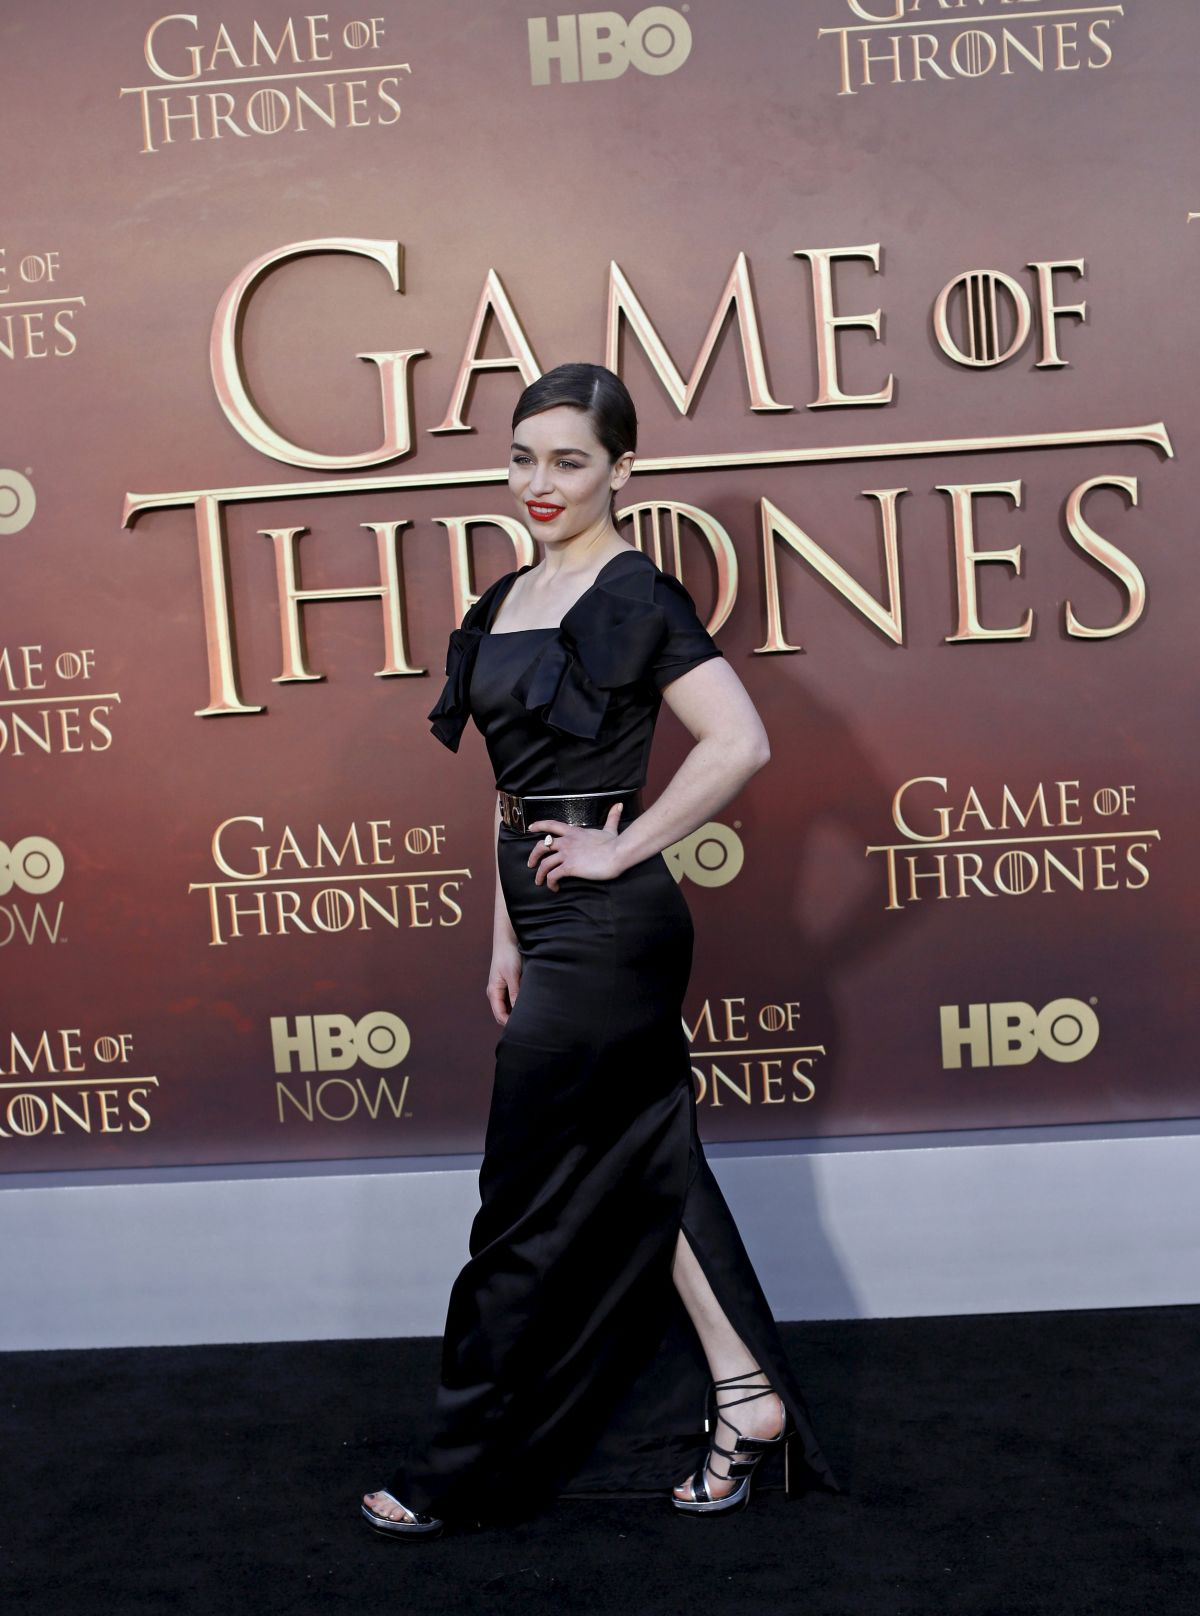 Pin Game Of Thrones Season 5 Premiere Date Revealed on Pinterest